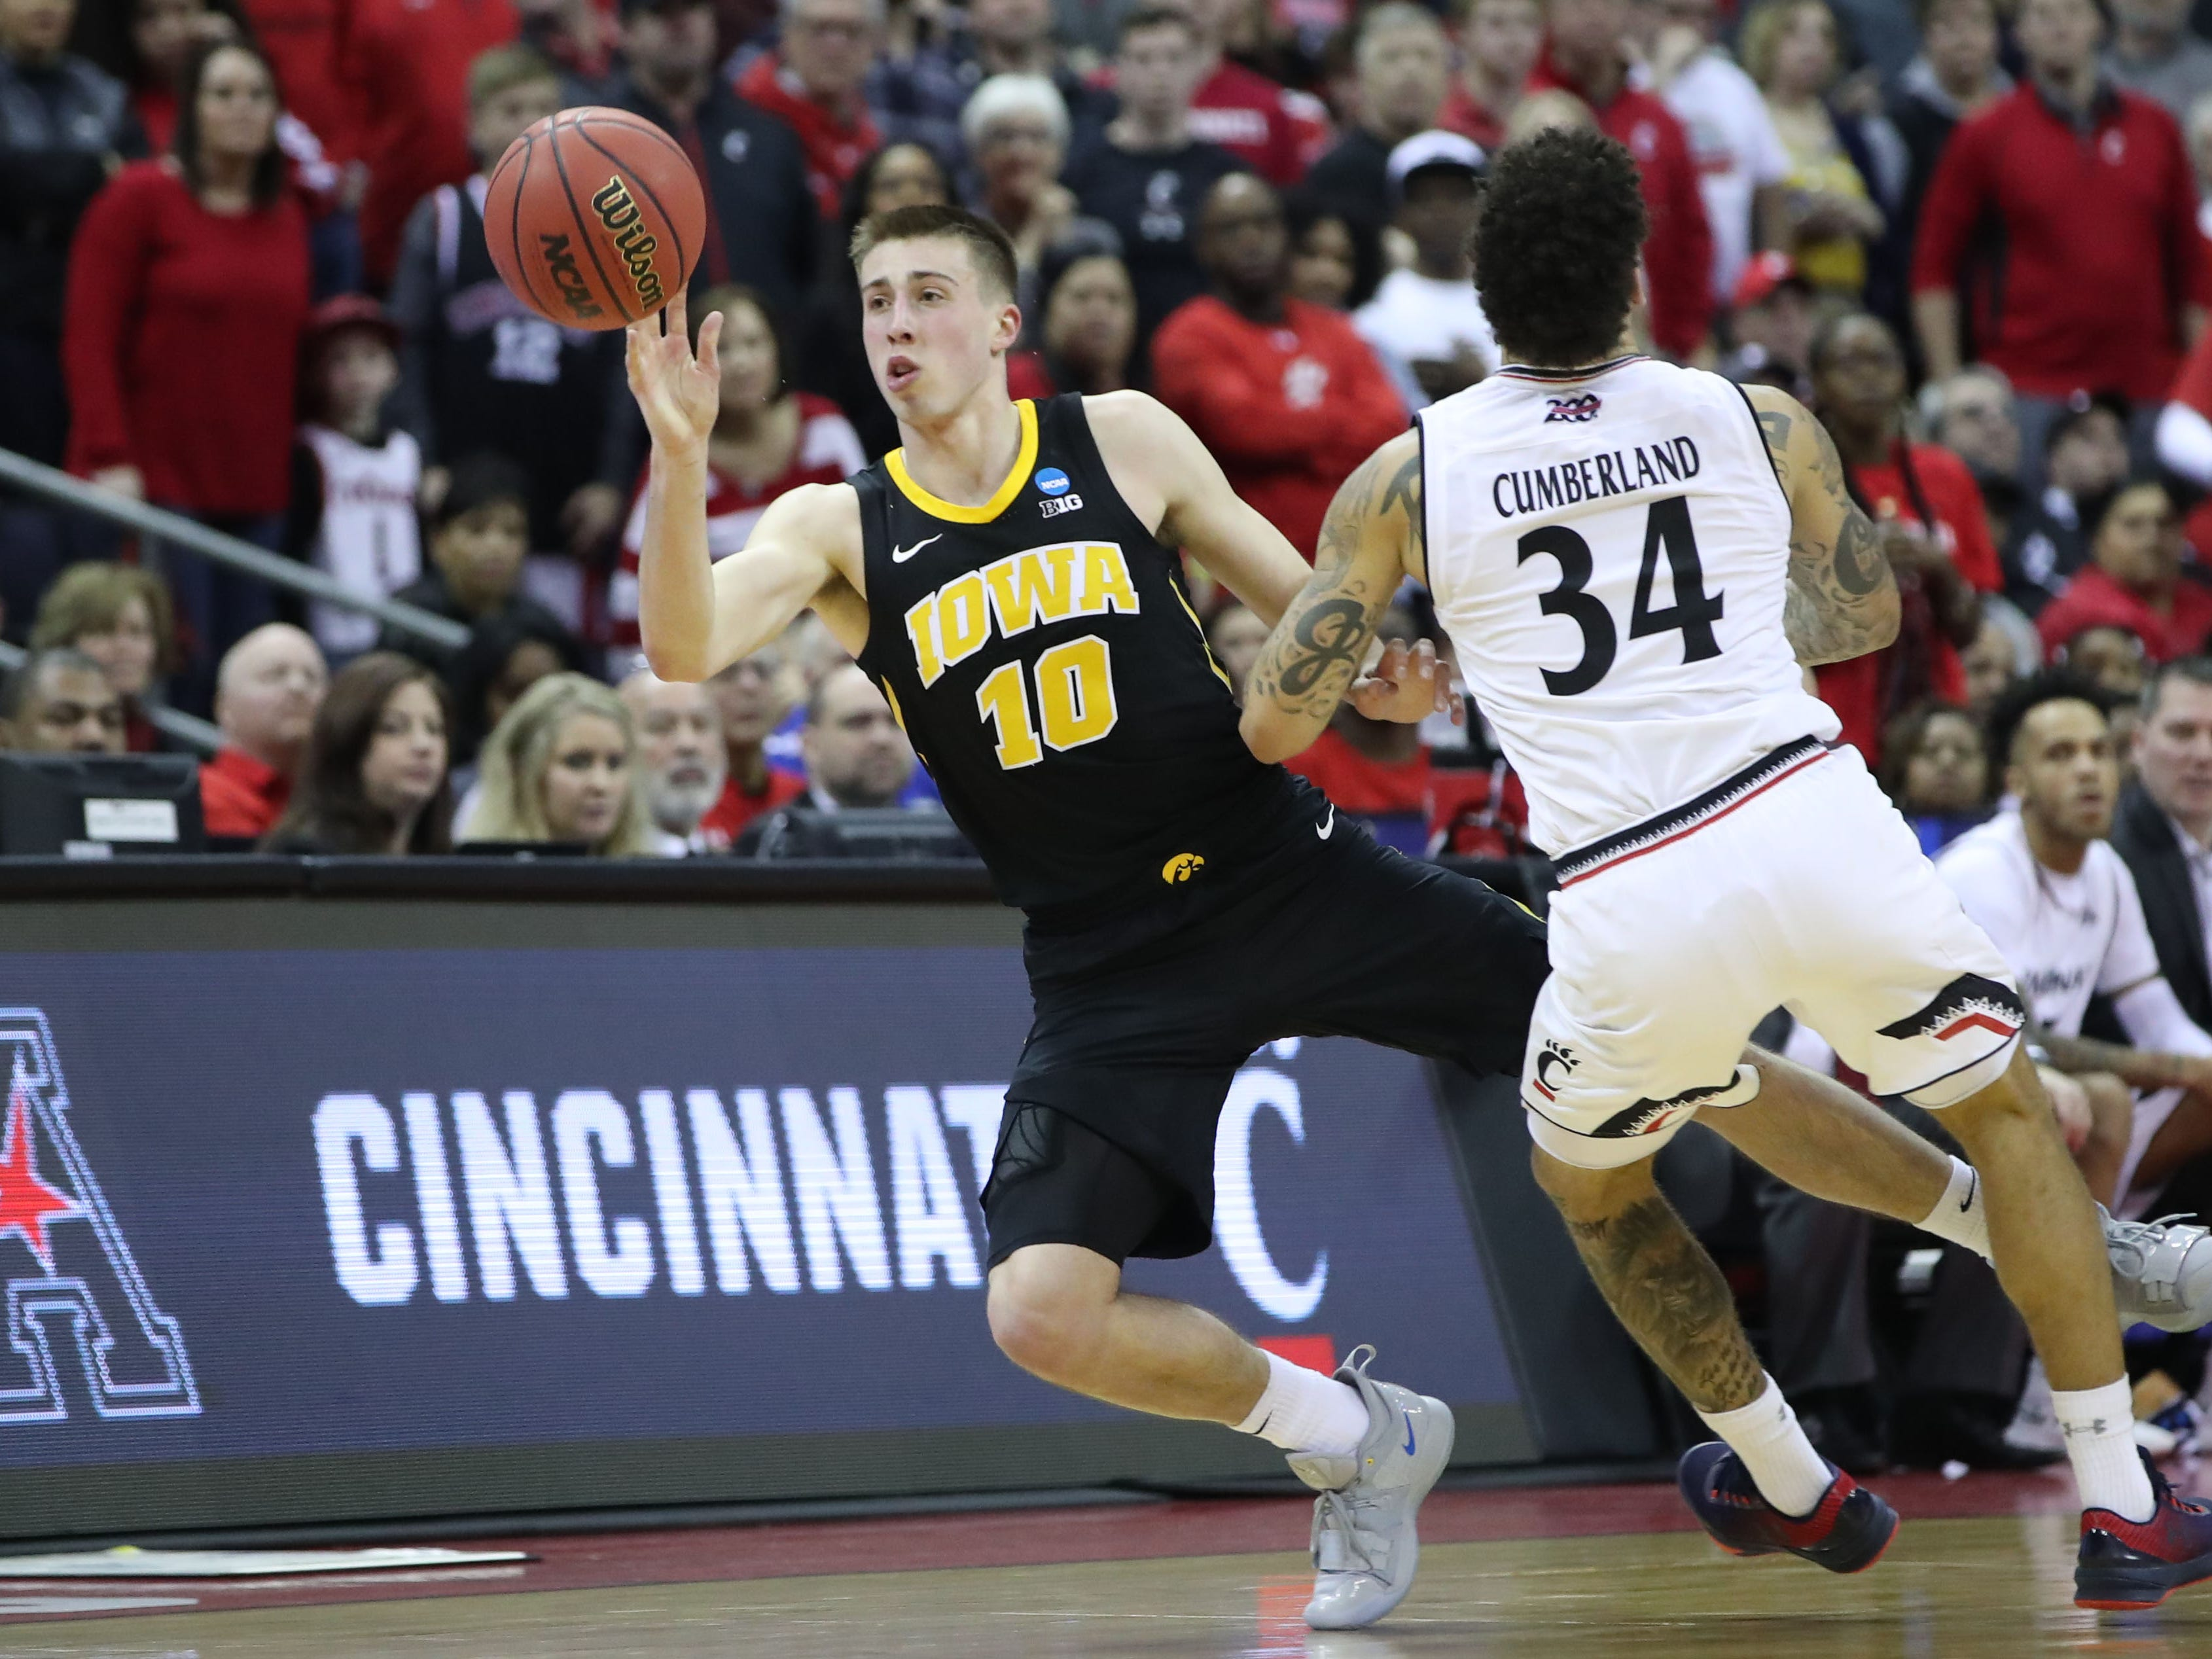 Iowa Hawkeyes guard Joe Wieskamp (10) passes the ball while falling to the court  defended by Cincinnati Bearcats guard Jarron Cumberland (34) in the second half in the first round of the 2019 NCAA Tournament at Nationwide Arena on March 22, 2019.